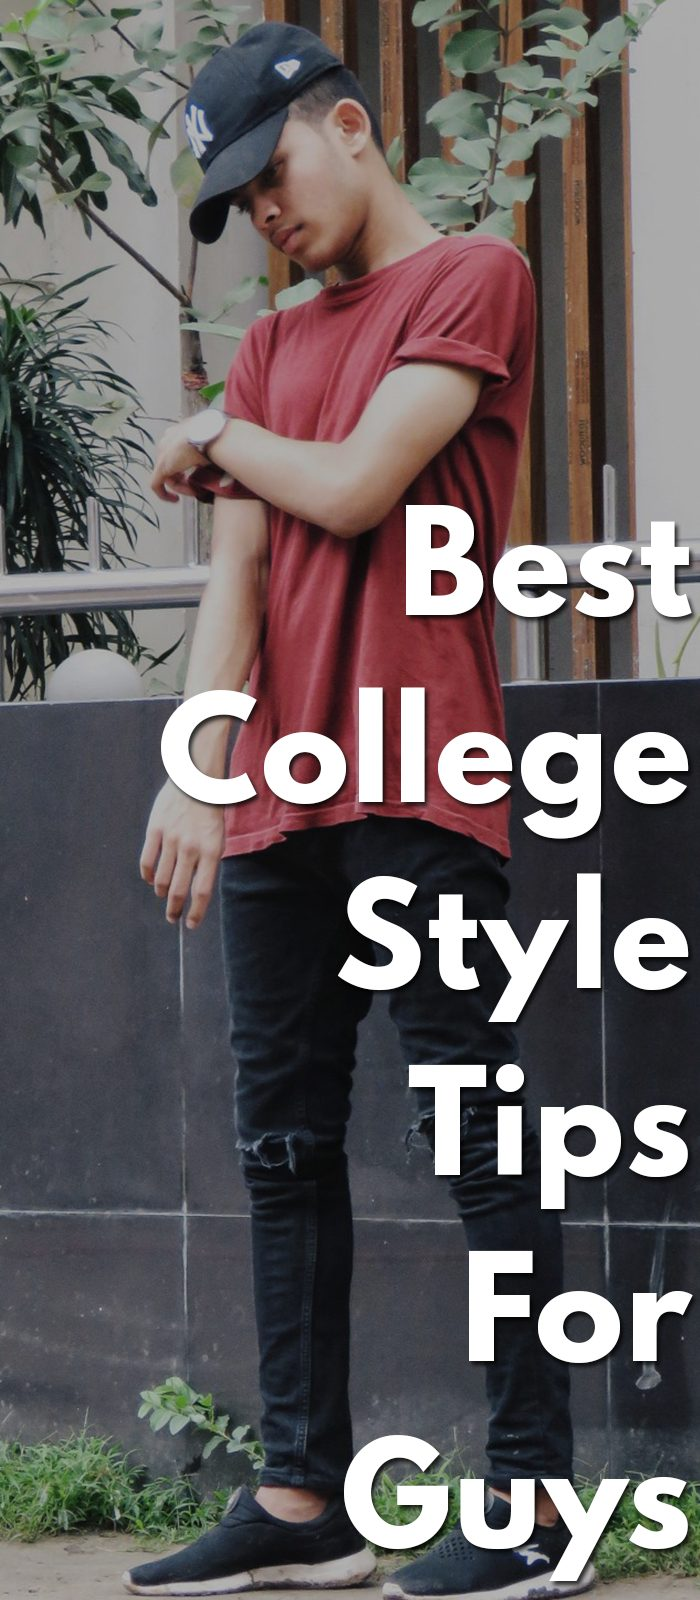 Best-College-Style-Tips-For-Guys